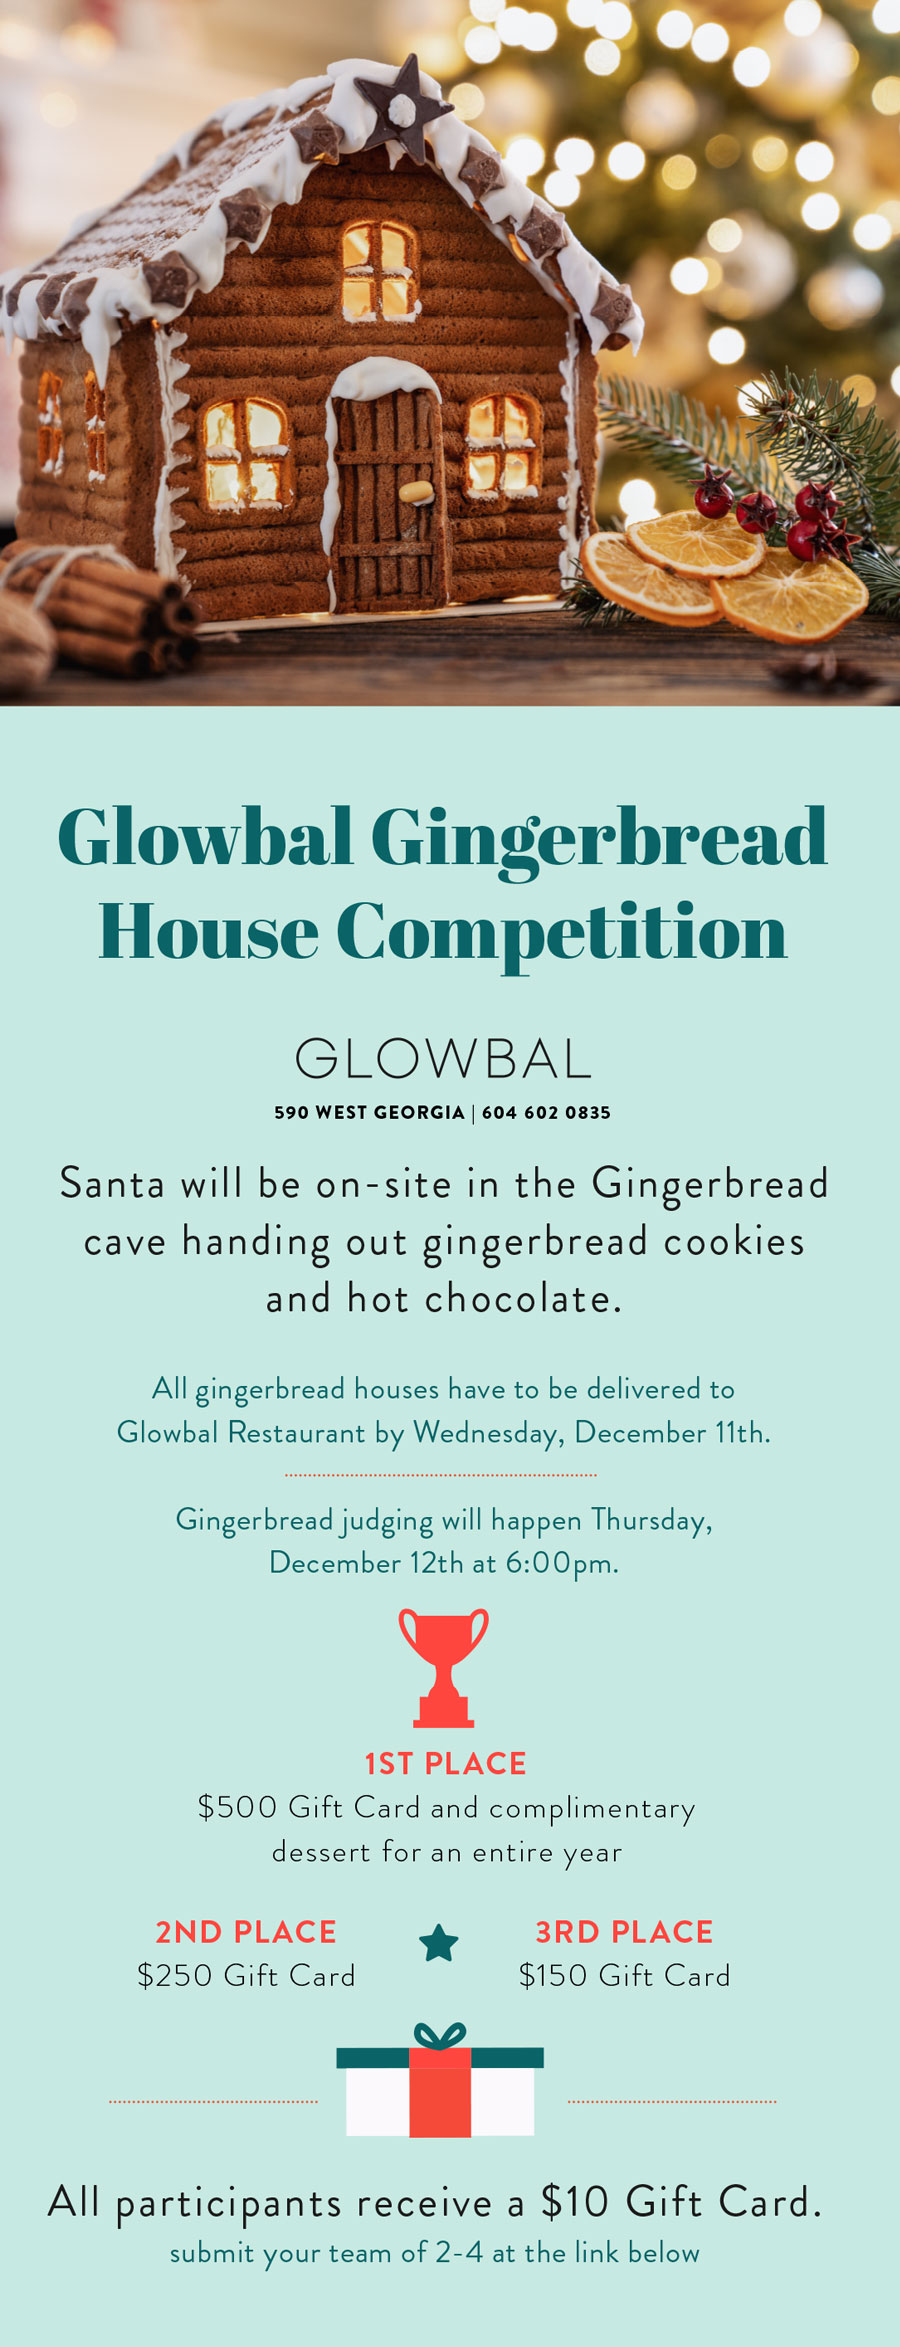 Glowbal Gingerbread House Competition. Santa will be on-site in the Gingerbread cave handing out gingerbread cookies and hot chocolate.All gingerbread houses have to be delivered to Glowbal Restaurant by Wednesday, December 11th. Gingerbread judging will happen Thursday, December 12th at 6:00pm.